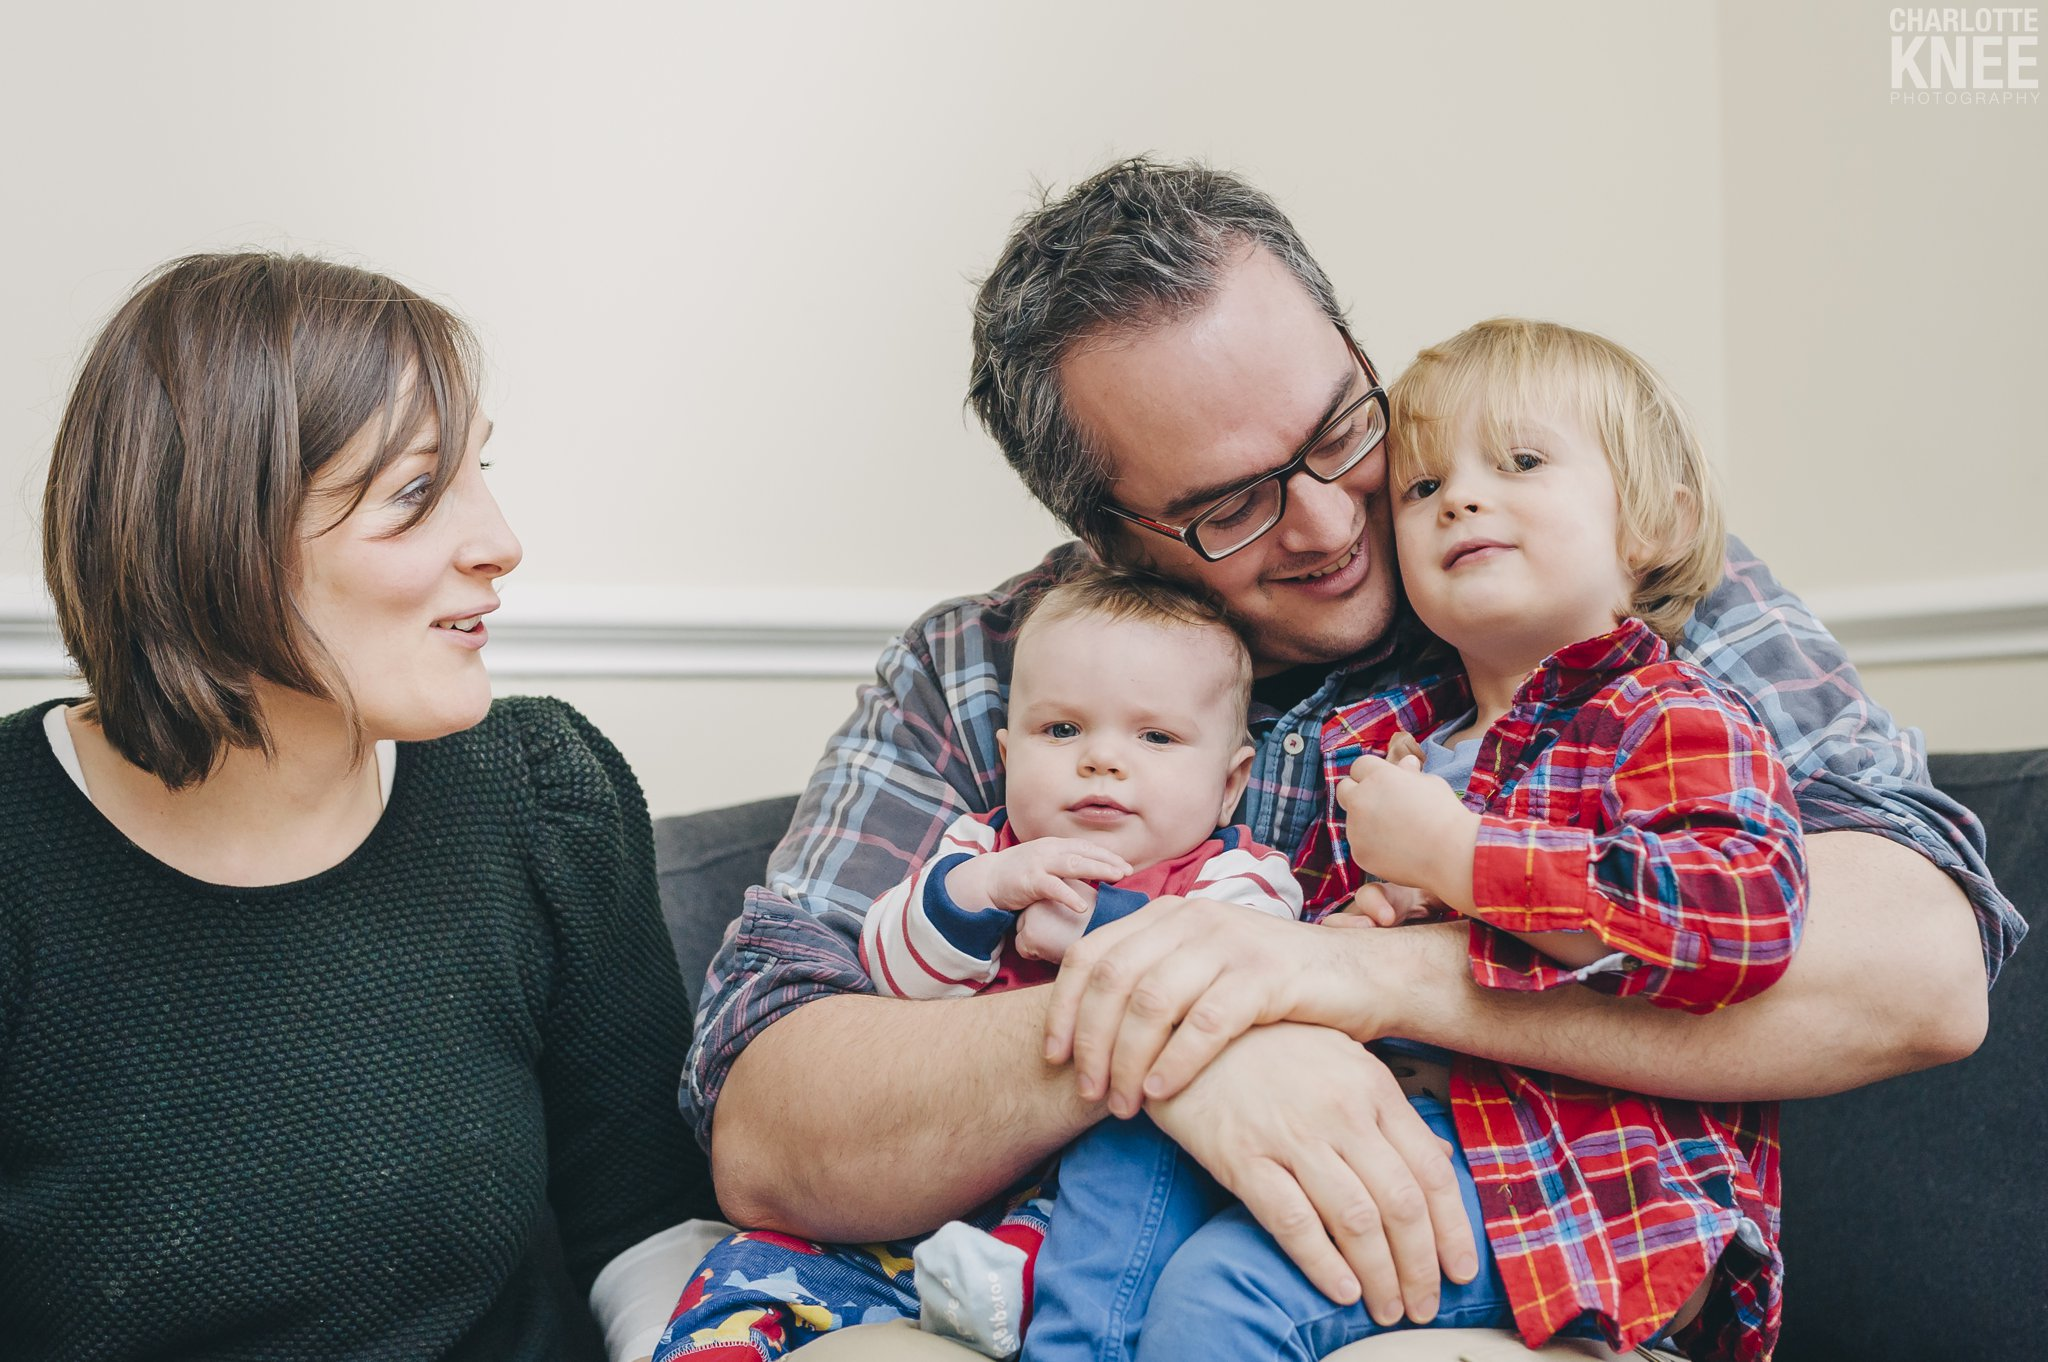 Family-Portrait-Photography-Charlotte-Knee-Photography